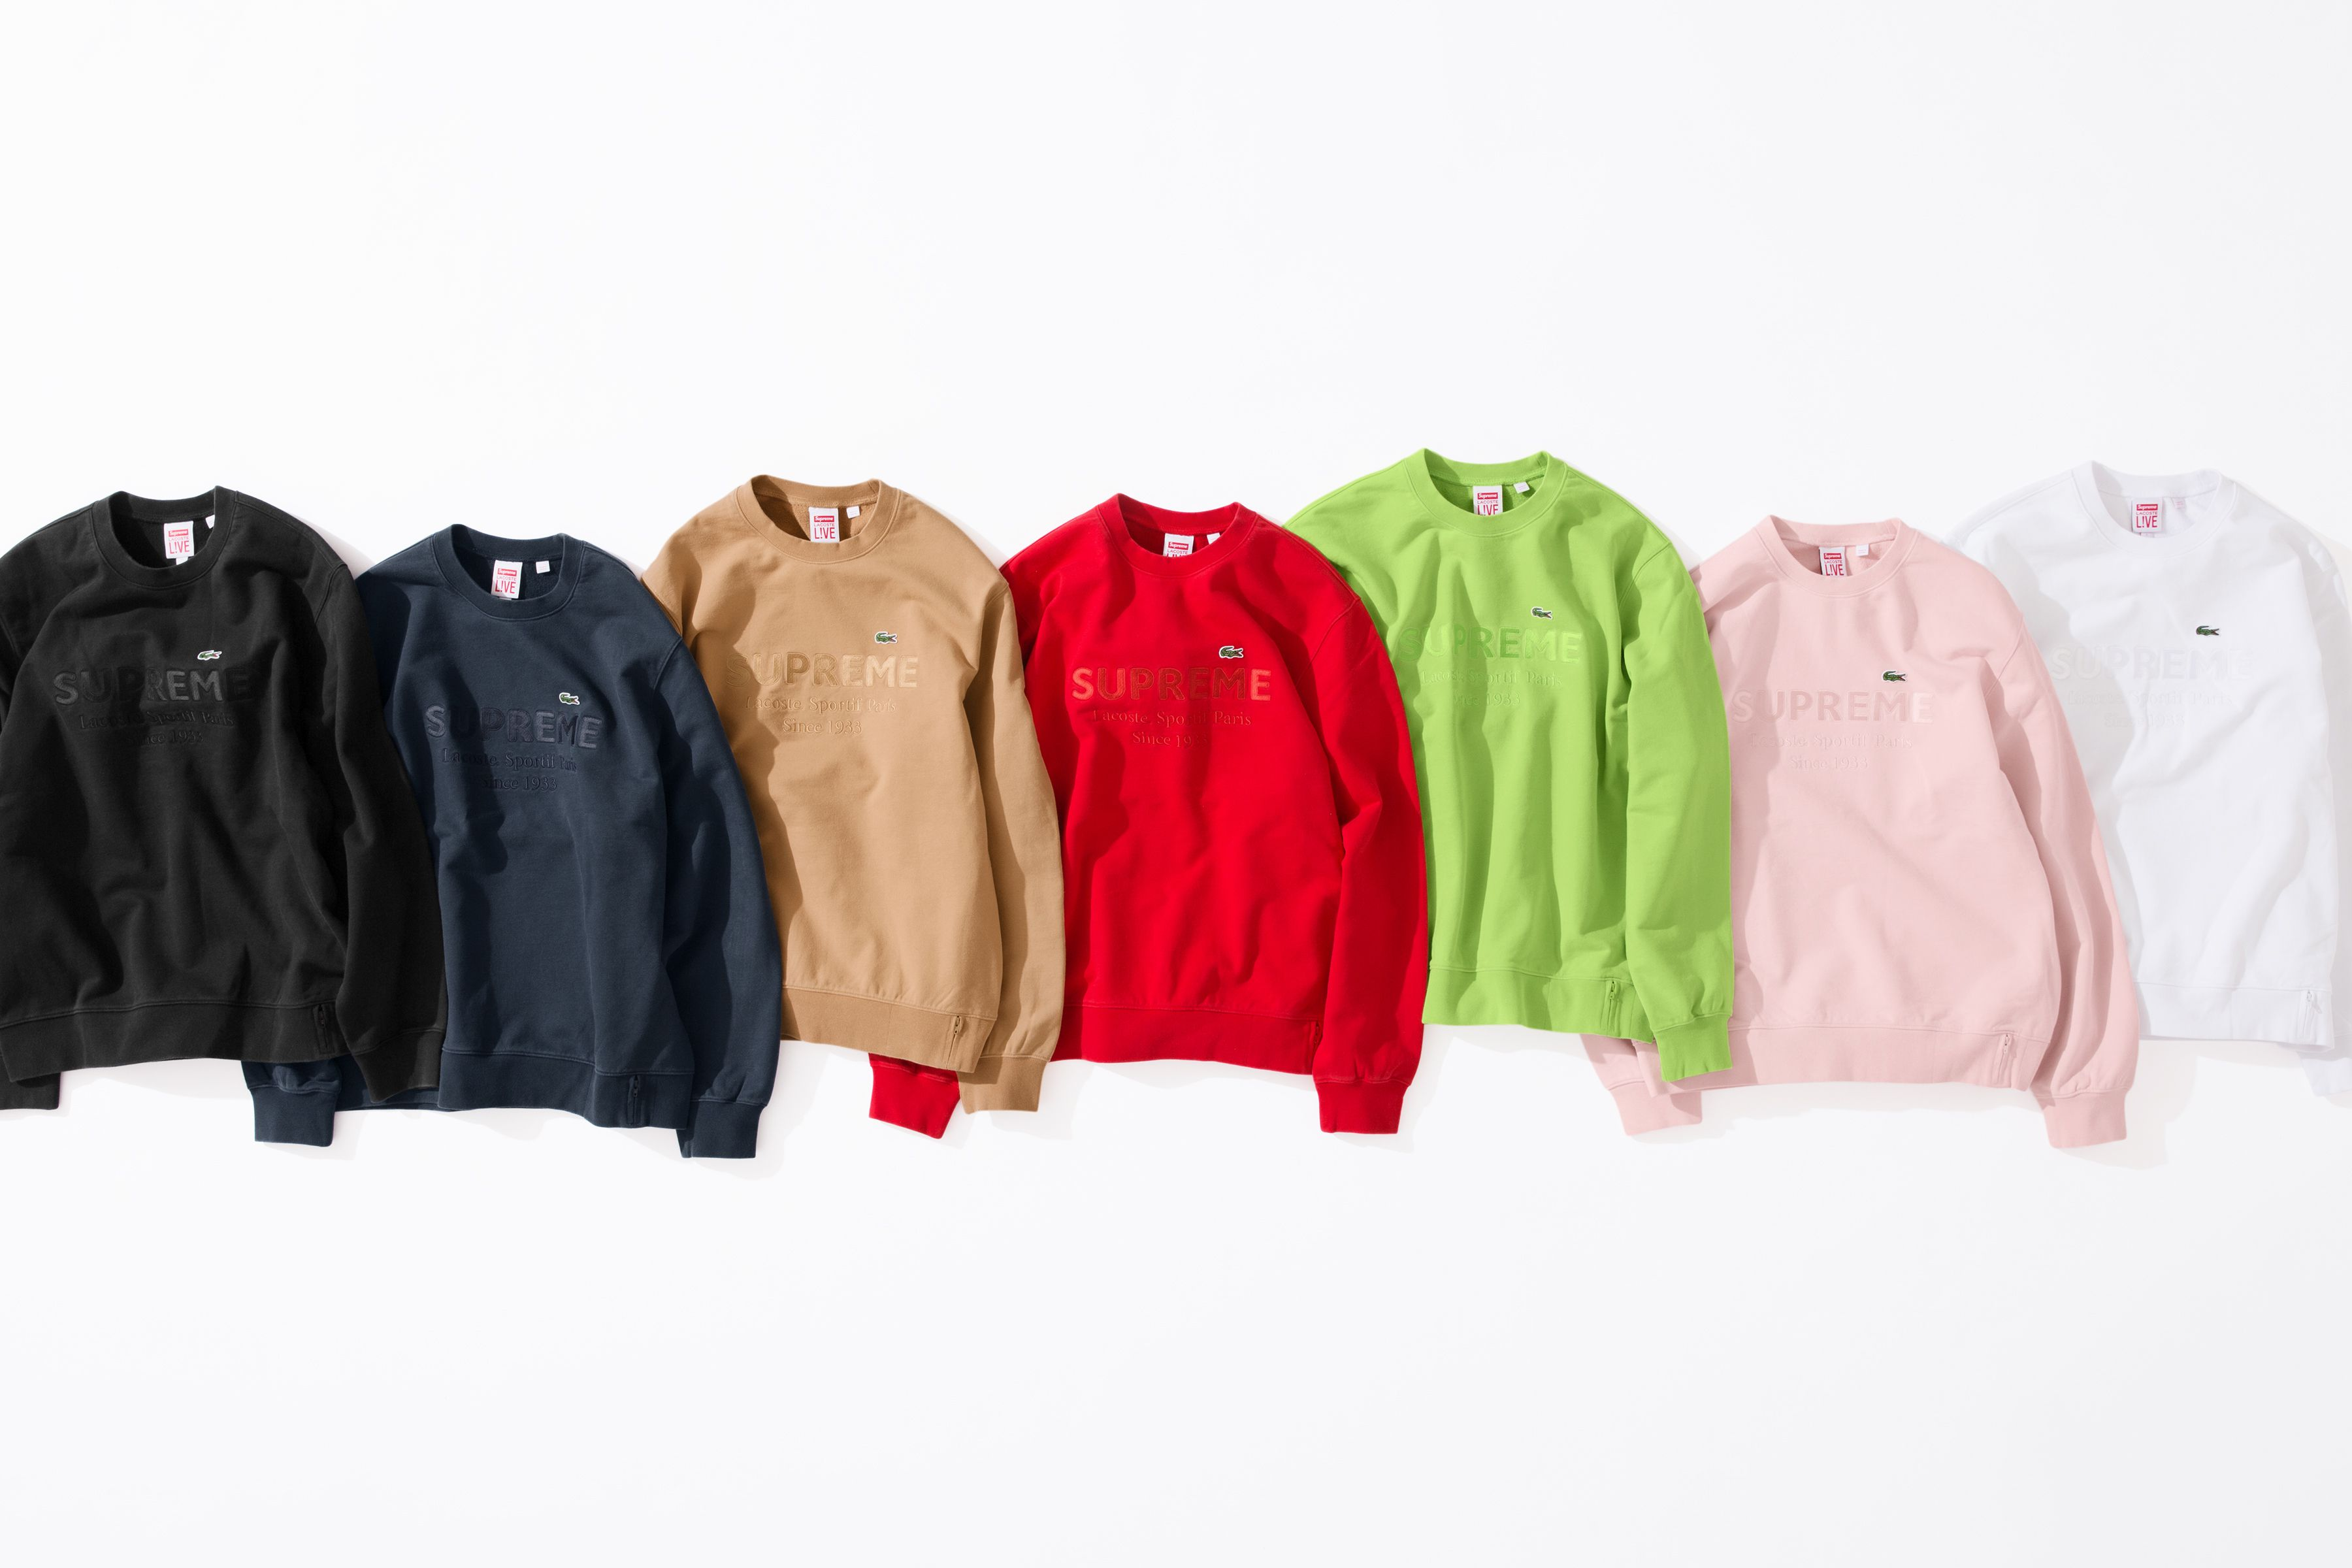 ad6c44eb8e2 The Supreme Lacoste Collab Is Even Better This Time Around – Fashion ...